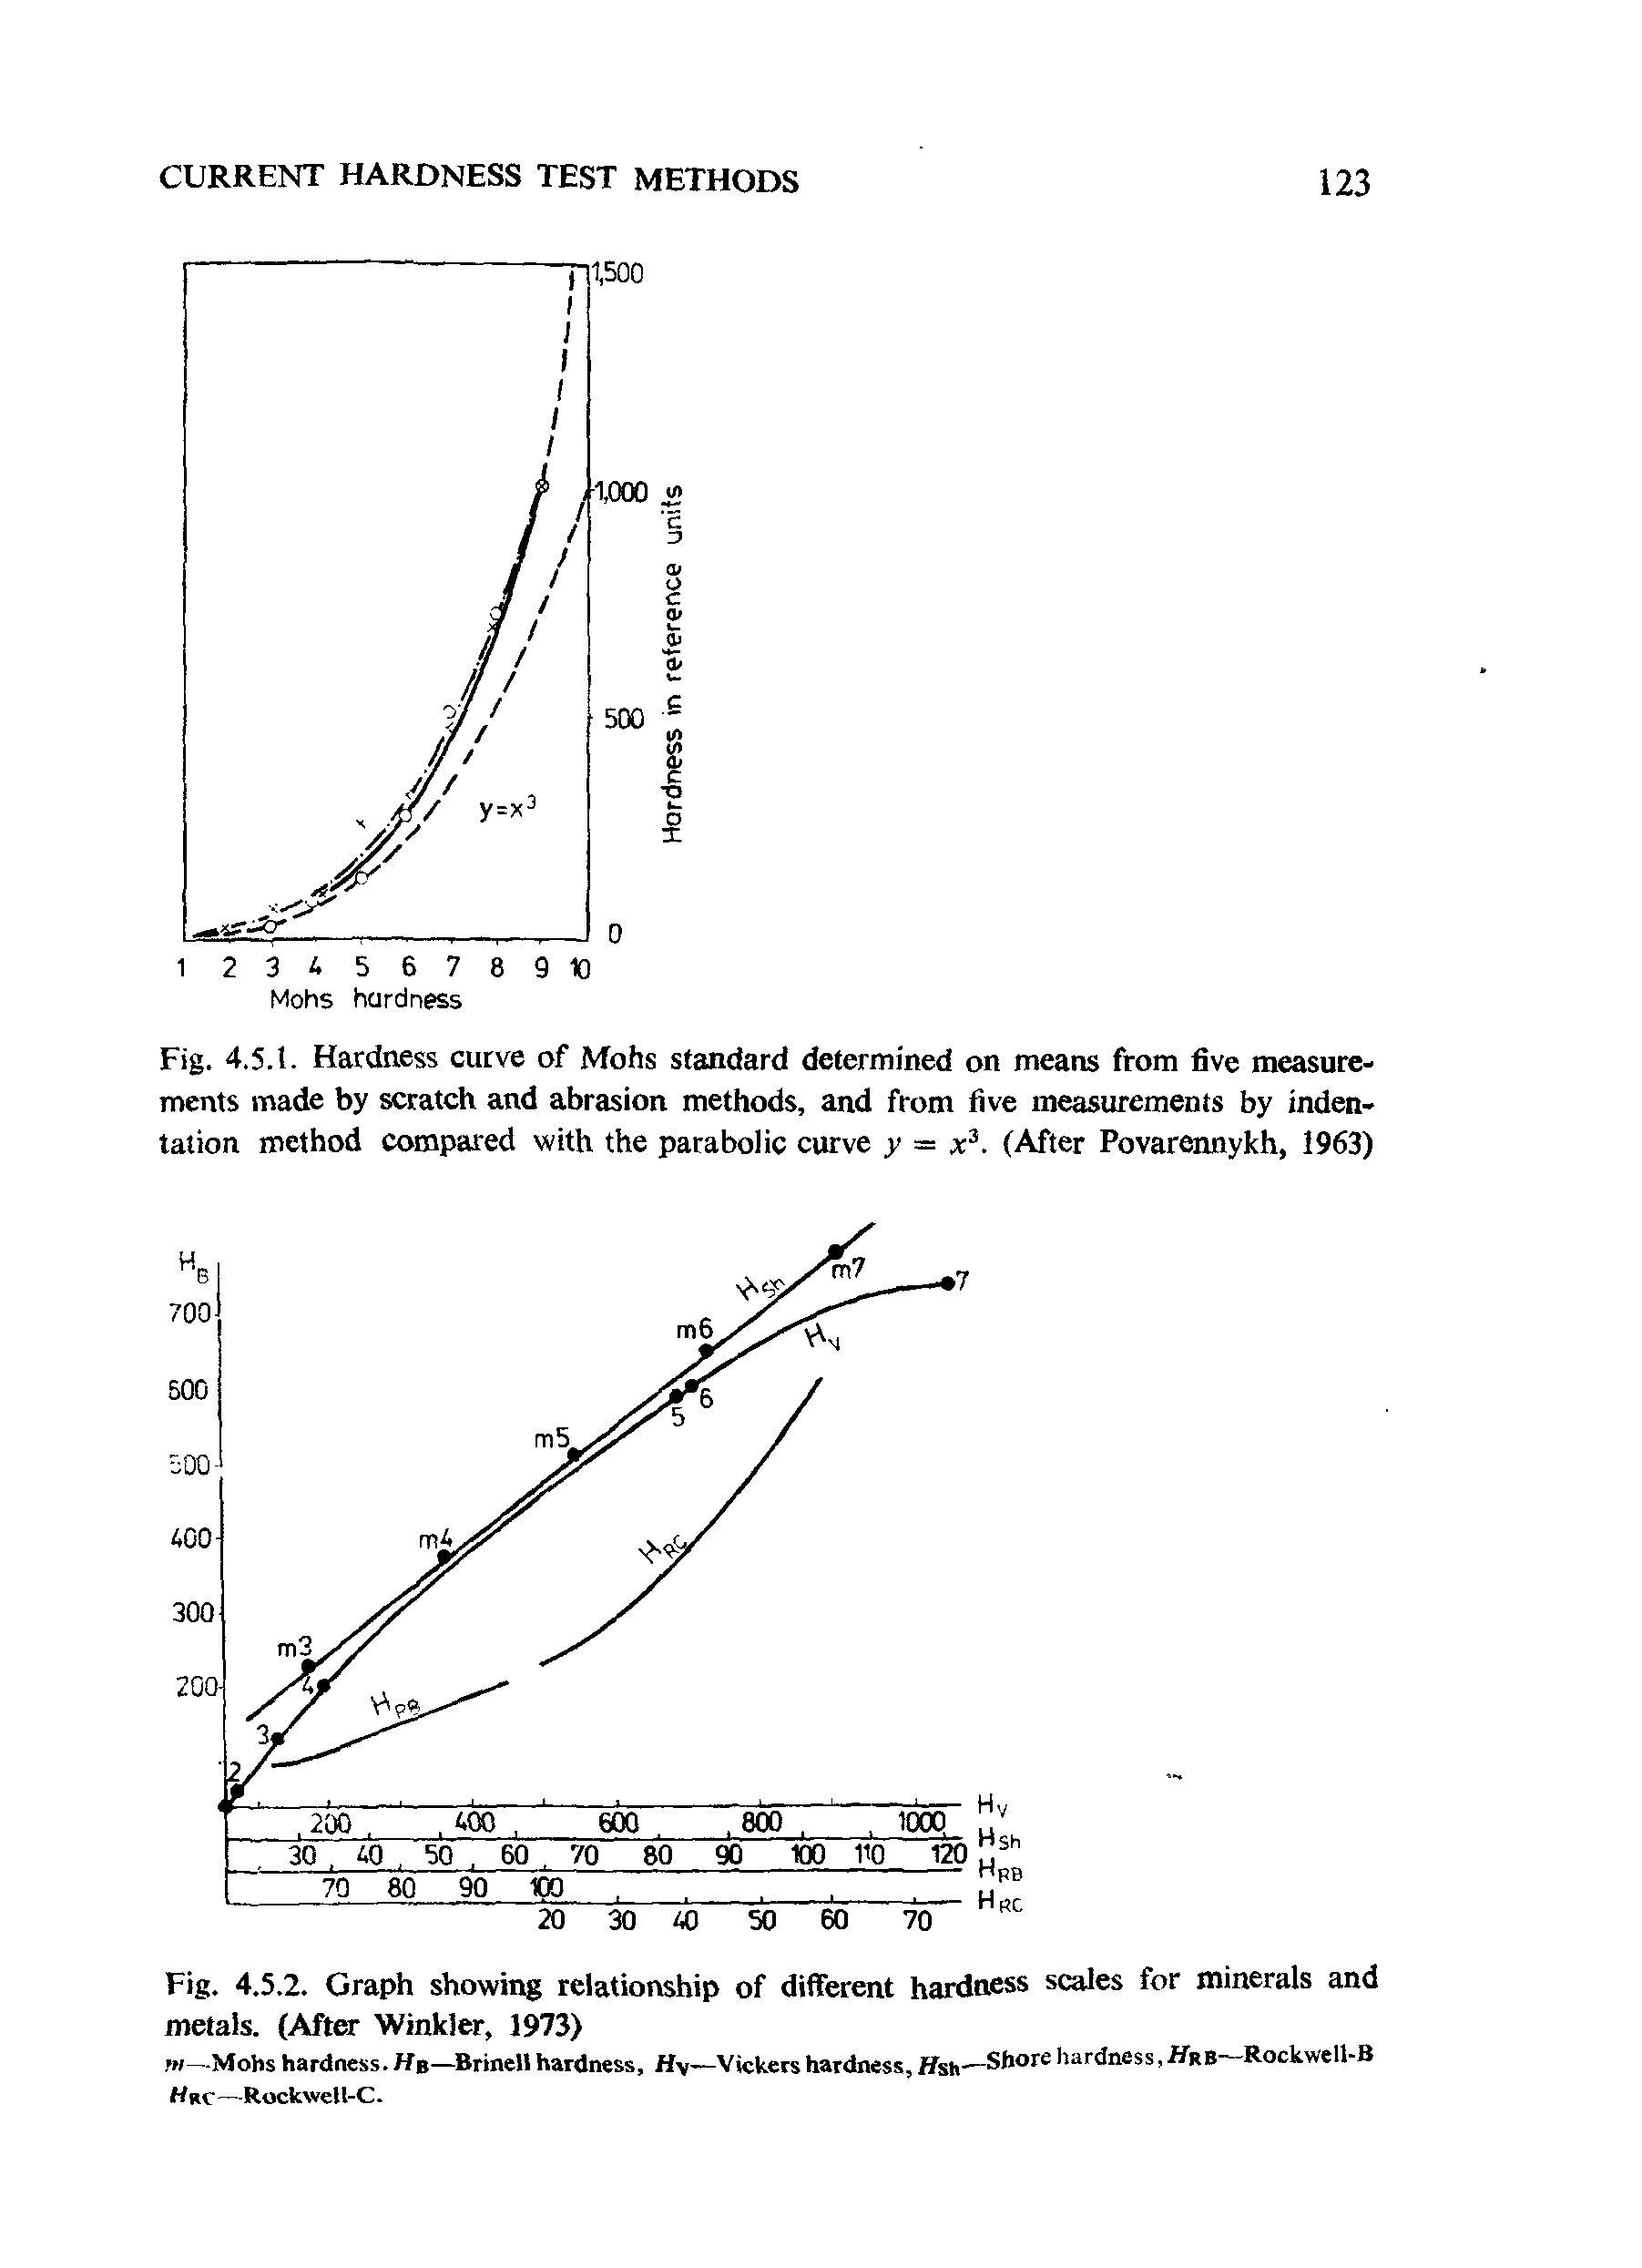 "Fig. 4.5.1. Hardness curve of Mohs <a href=""/info/standard_determination"">standard determined</a> on means from <a href=""/info/big_five_measurement"">five measurements</a> made by scratch and <a href=""/info/abrasion_methods"">abrasion methods</a>, and from <a href=""/info/big_five_measurement"">five measurements</a> by <a href=""/info/indentation_methods"">indentation method</a> compared with the parabolic curve y = x3. (After Povarennykh, 1963)"